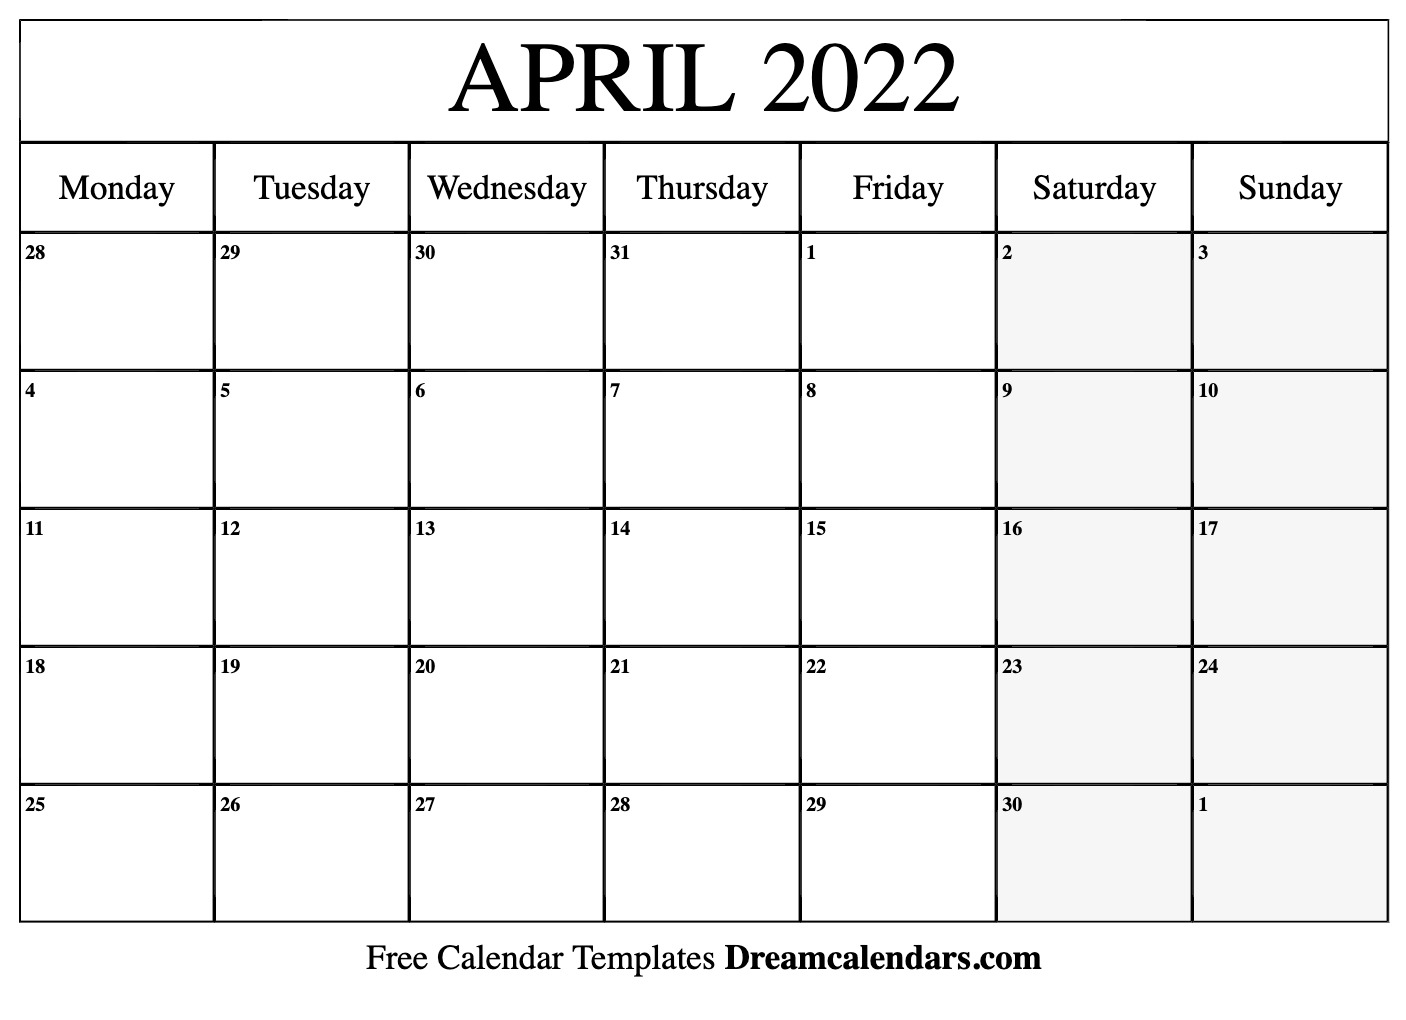 graphic relating to 2022 Calendar Printable called Printable April 2022 Calendar